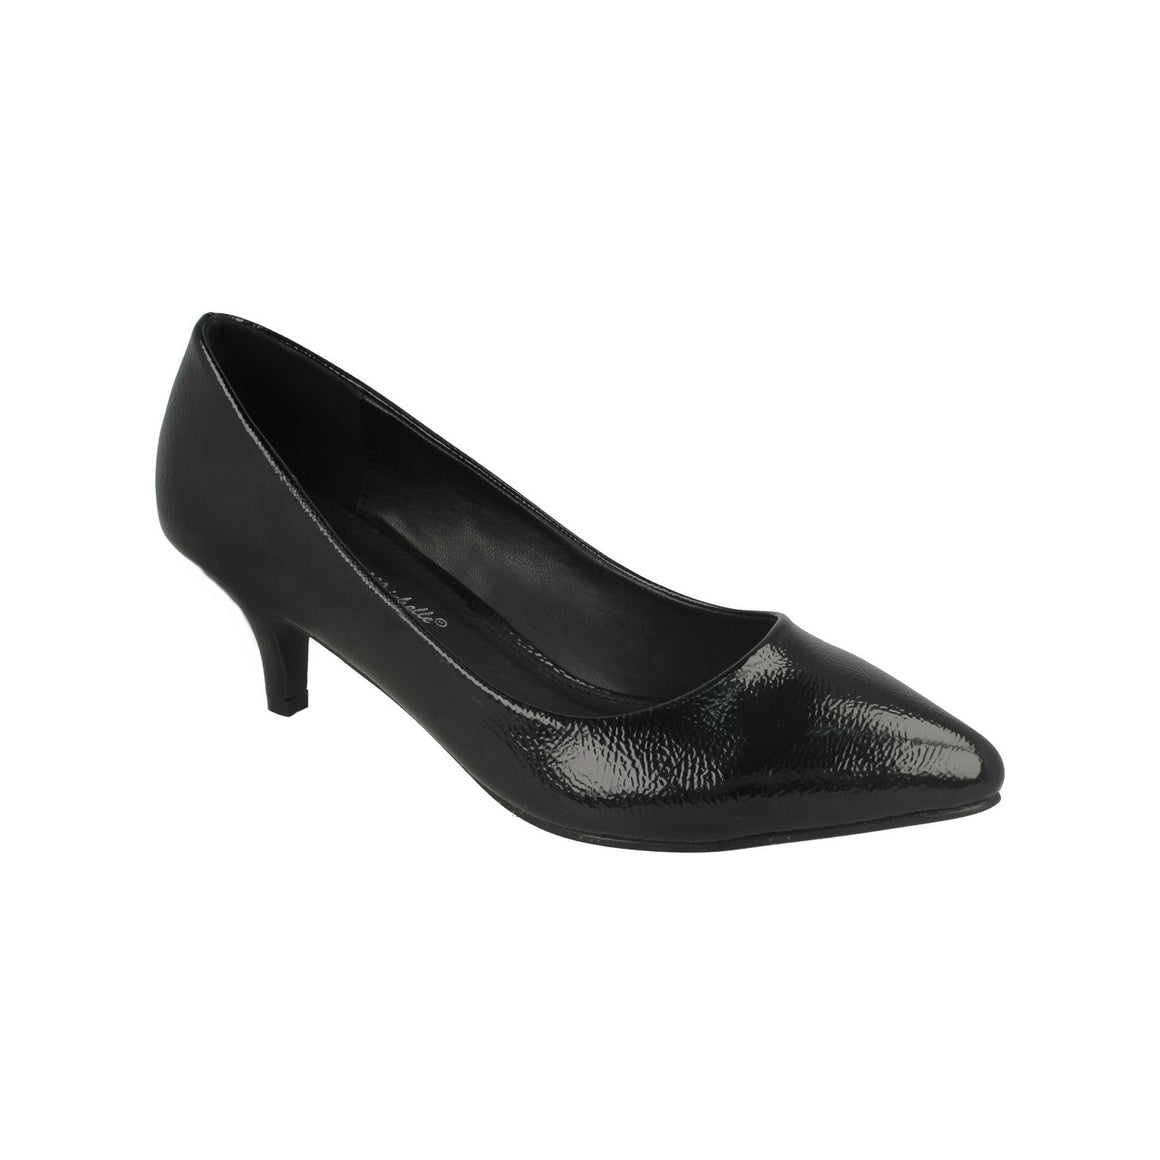 Black Patent Kitten Heel Court Shoe - Pretty Kitty Fashion